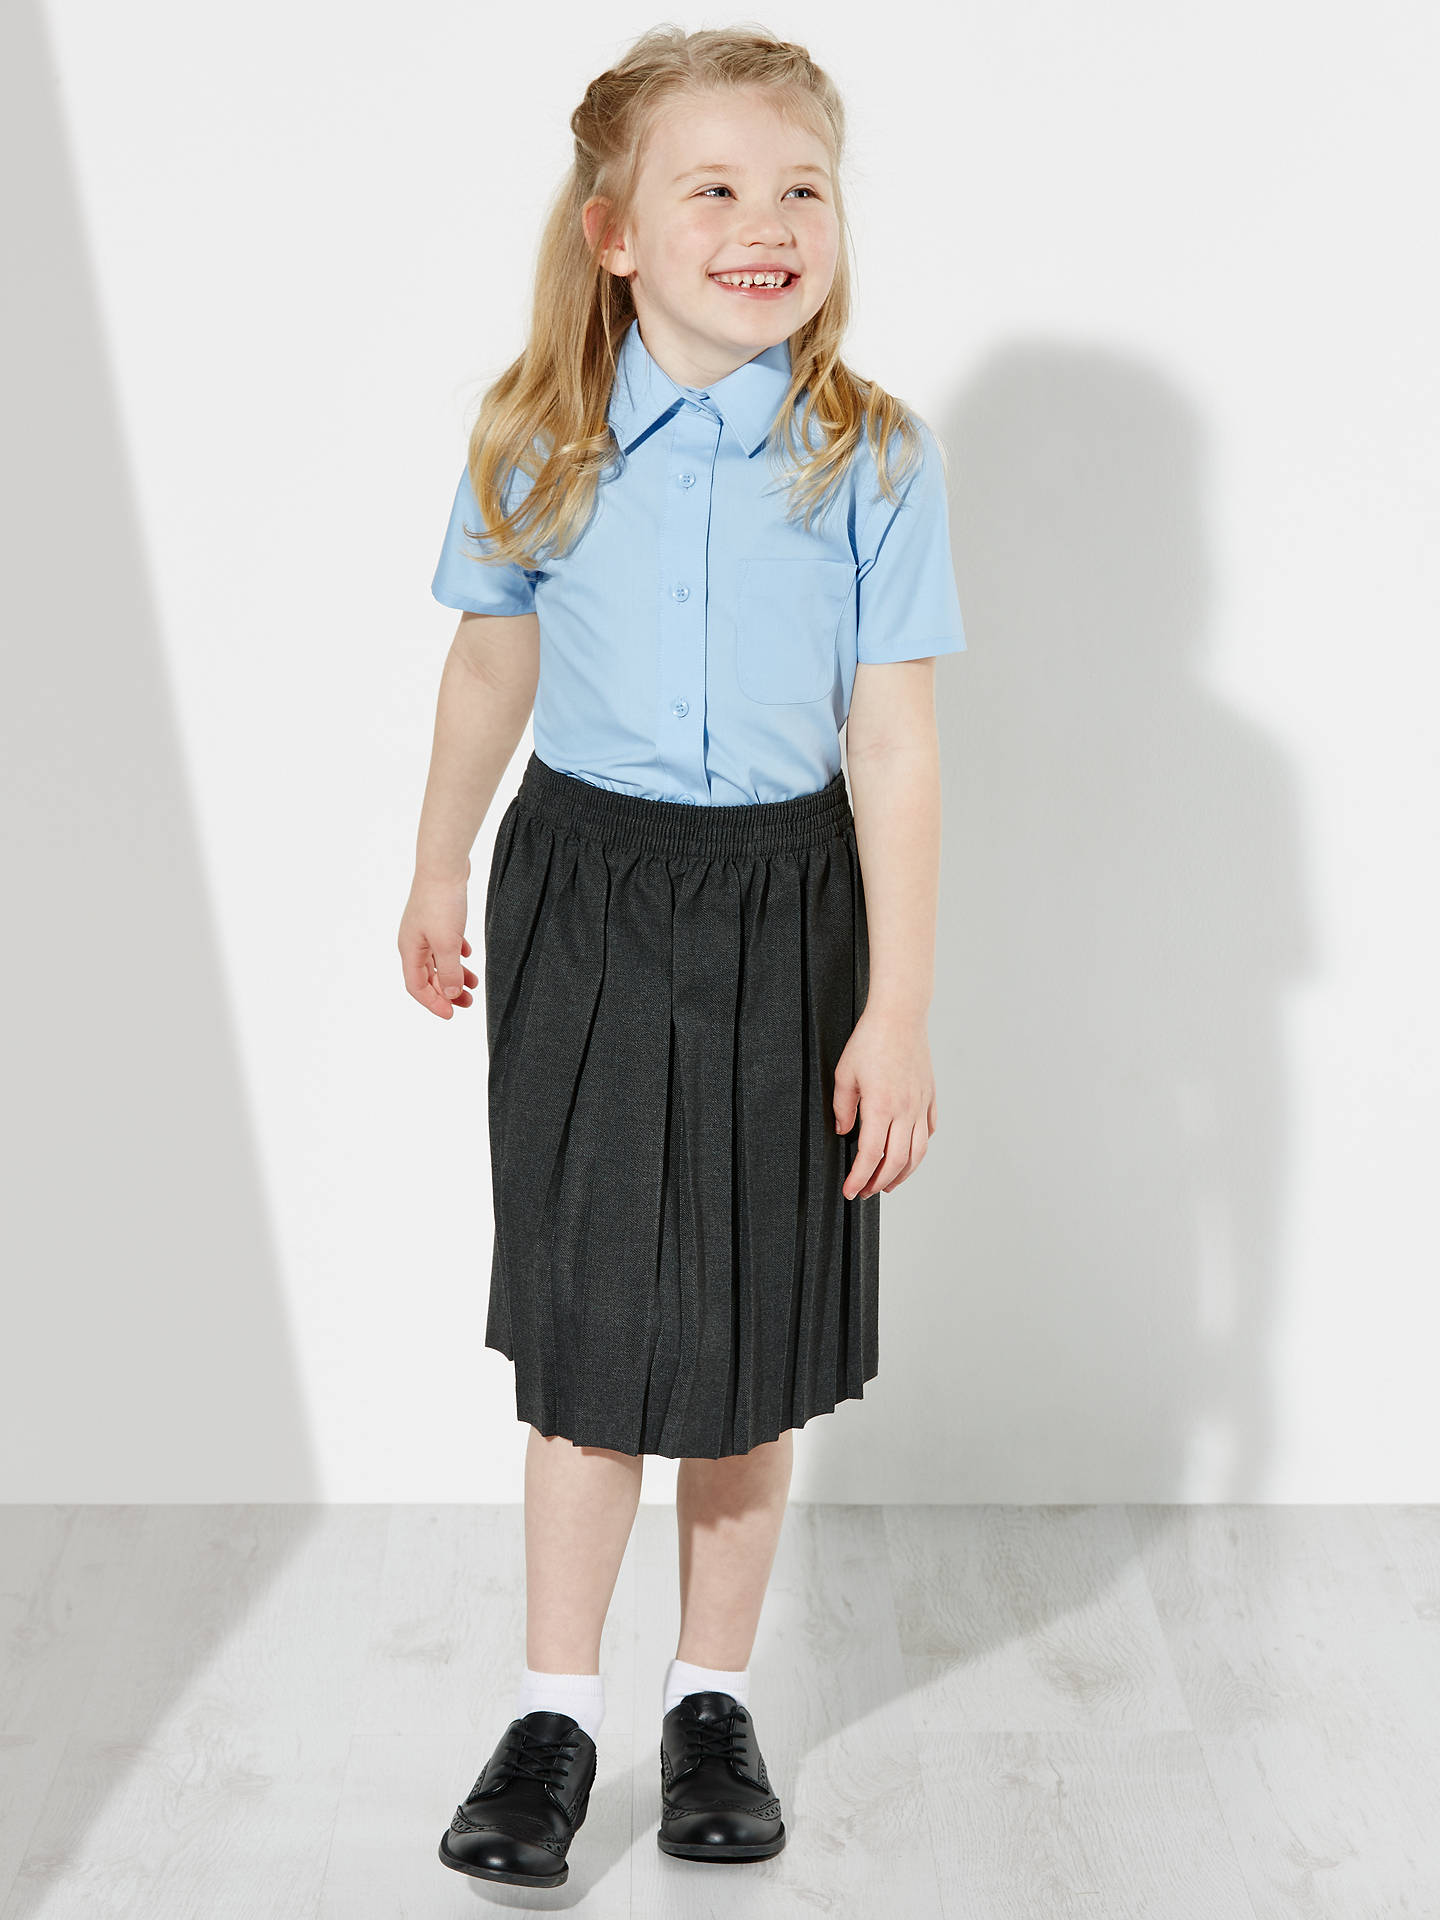 Buy John Lewis & Partners Girls' Short Sleeve School Blouse, Pack of 2, Blue, 4 years Online at johnlewis.com